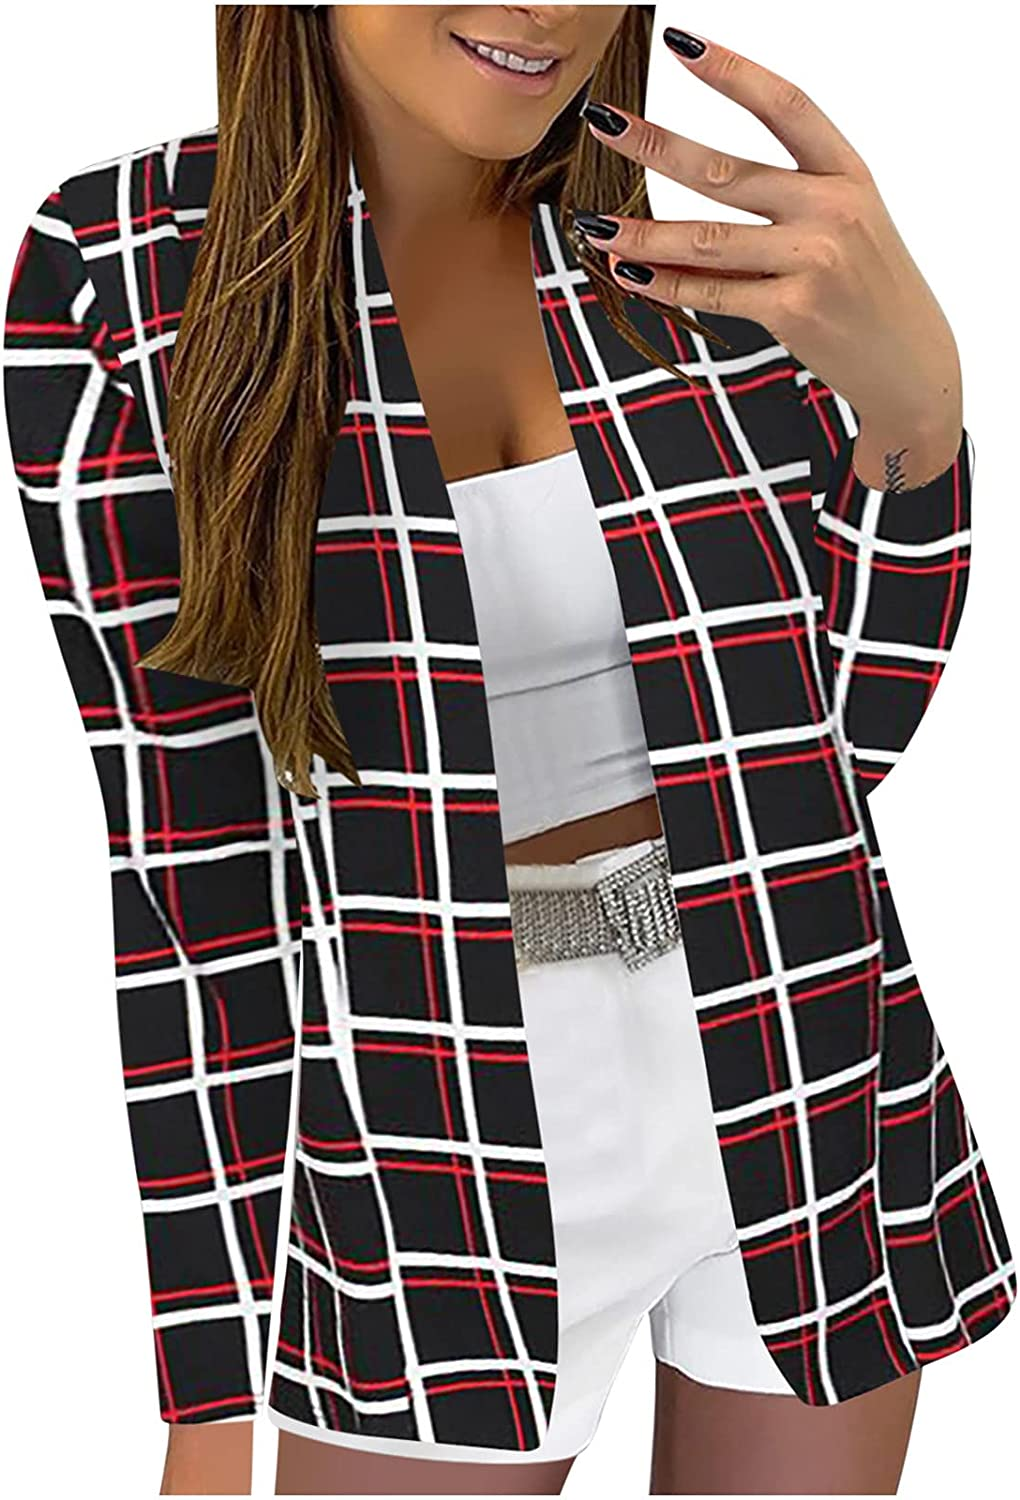 Womens Business Blazers Attire Printed 3/4/ Sleeve Slimming Cardigan Suit Coat Top Casual Work Office Jackets Blazer